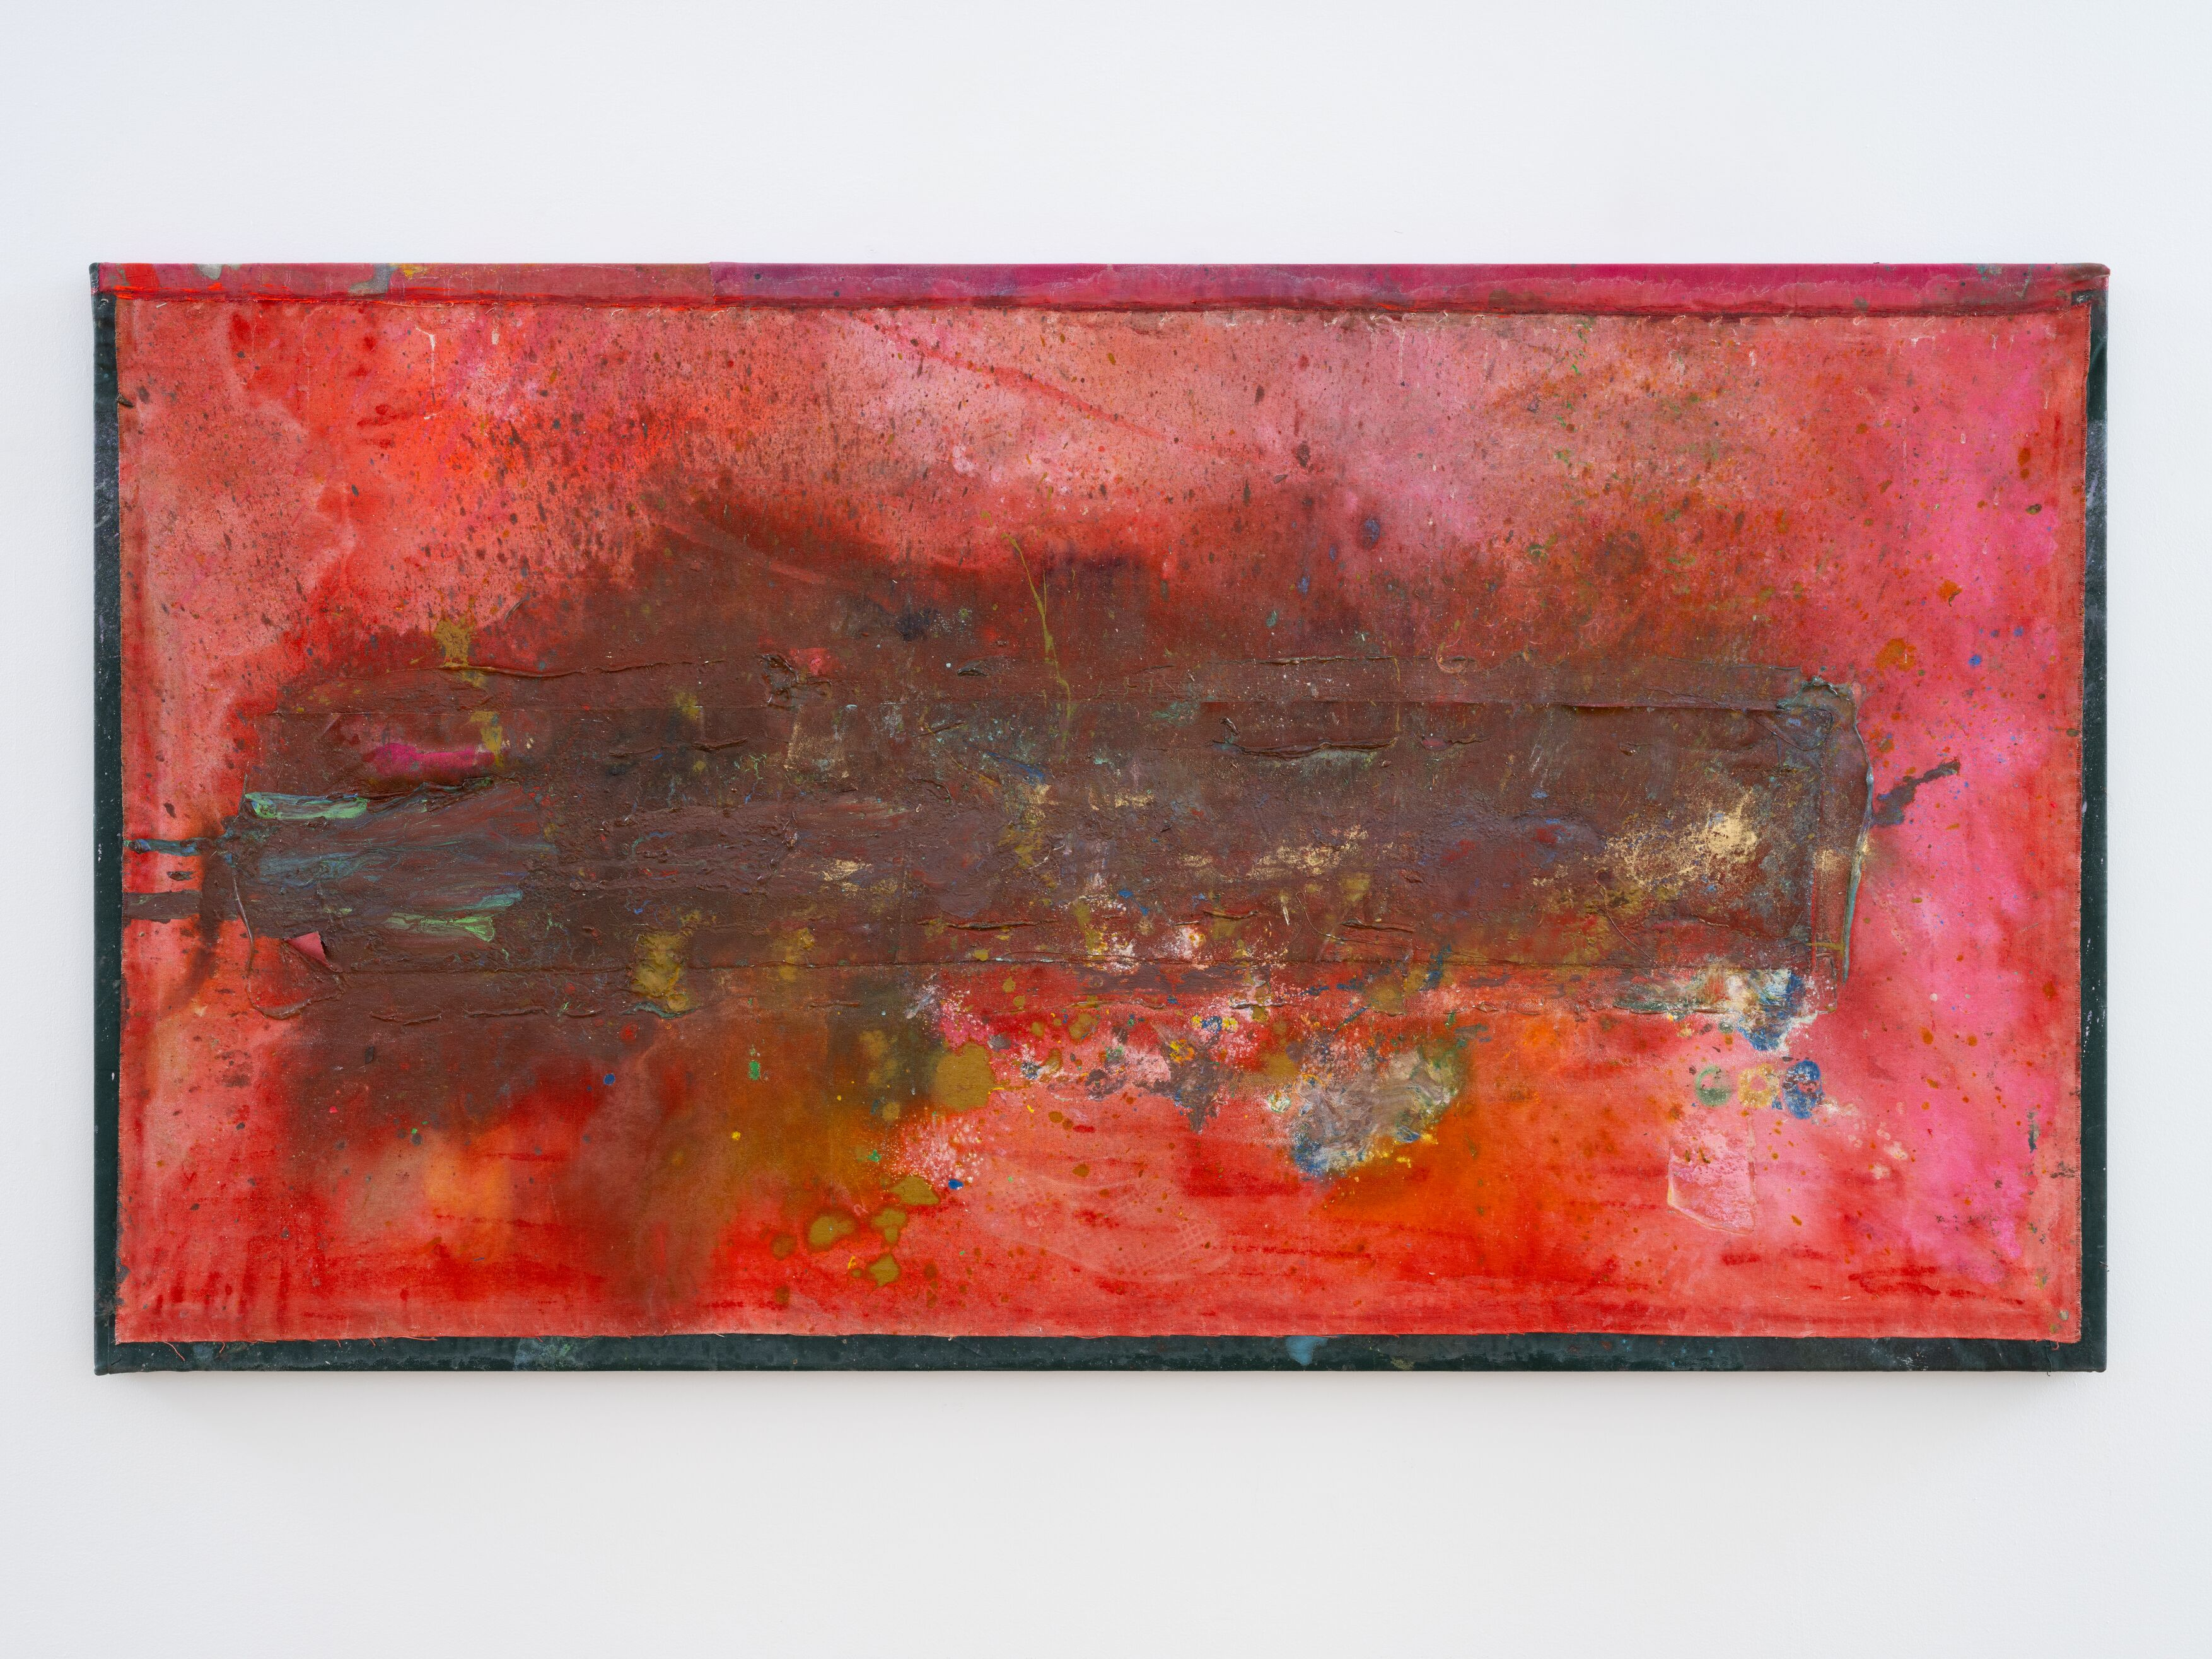 Frank Bowling, Flogging the Dead Donkey 2020 Acrylic and acrylic gel on canvas with marouflage 102.5 x 185.5 x 5 cm, Frank Bowling – London / New York, Hauser & Wirth, 21 May - 31 July 2021.Photo: Alex Delfanne, Courtesy the artist and Hauser & Wirth.